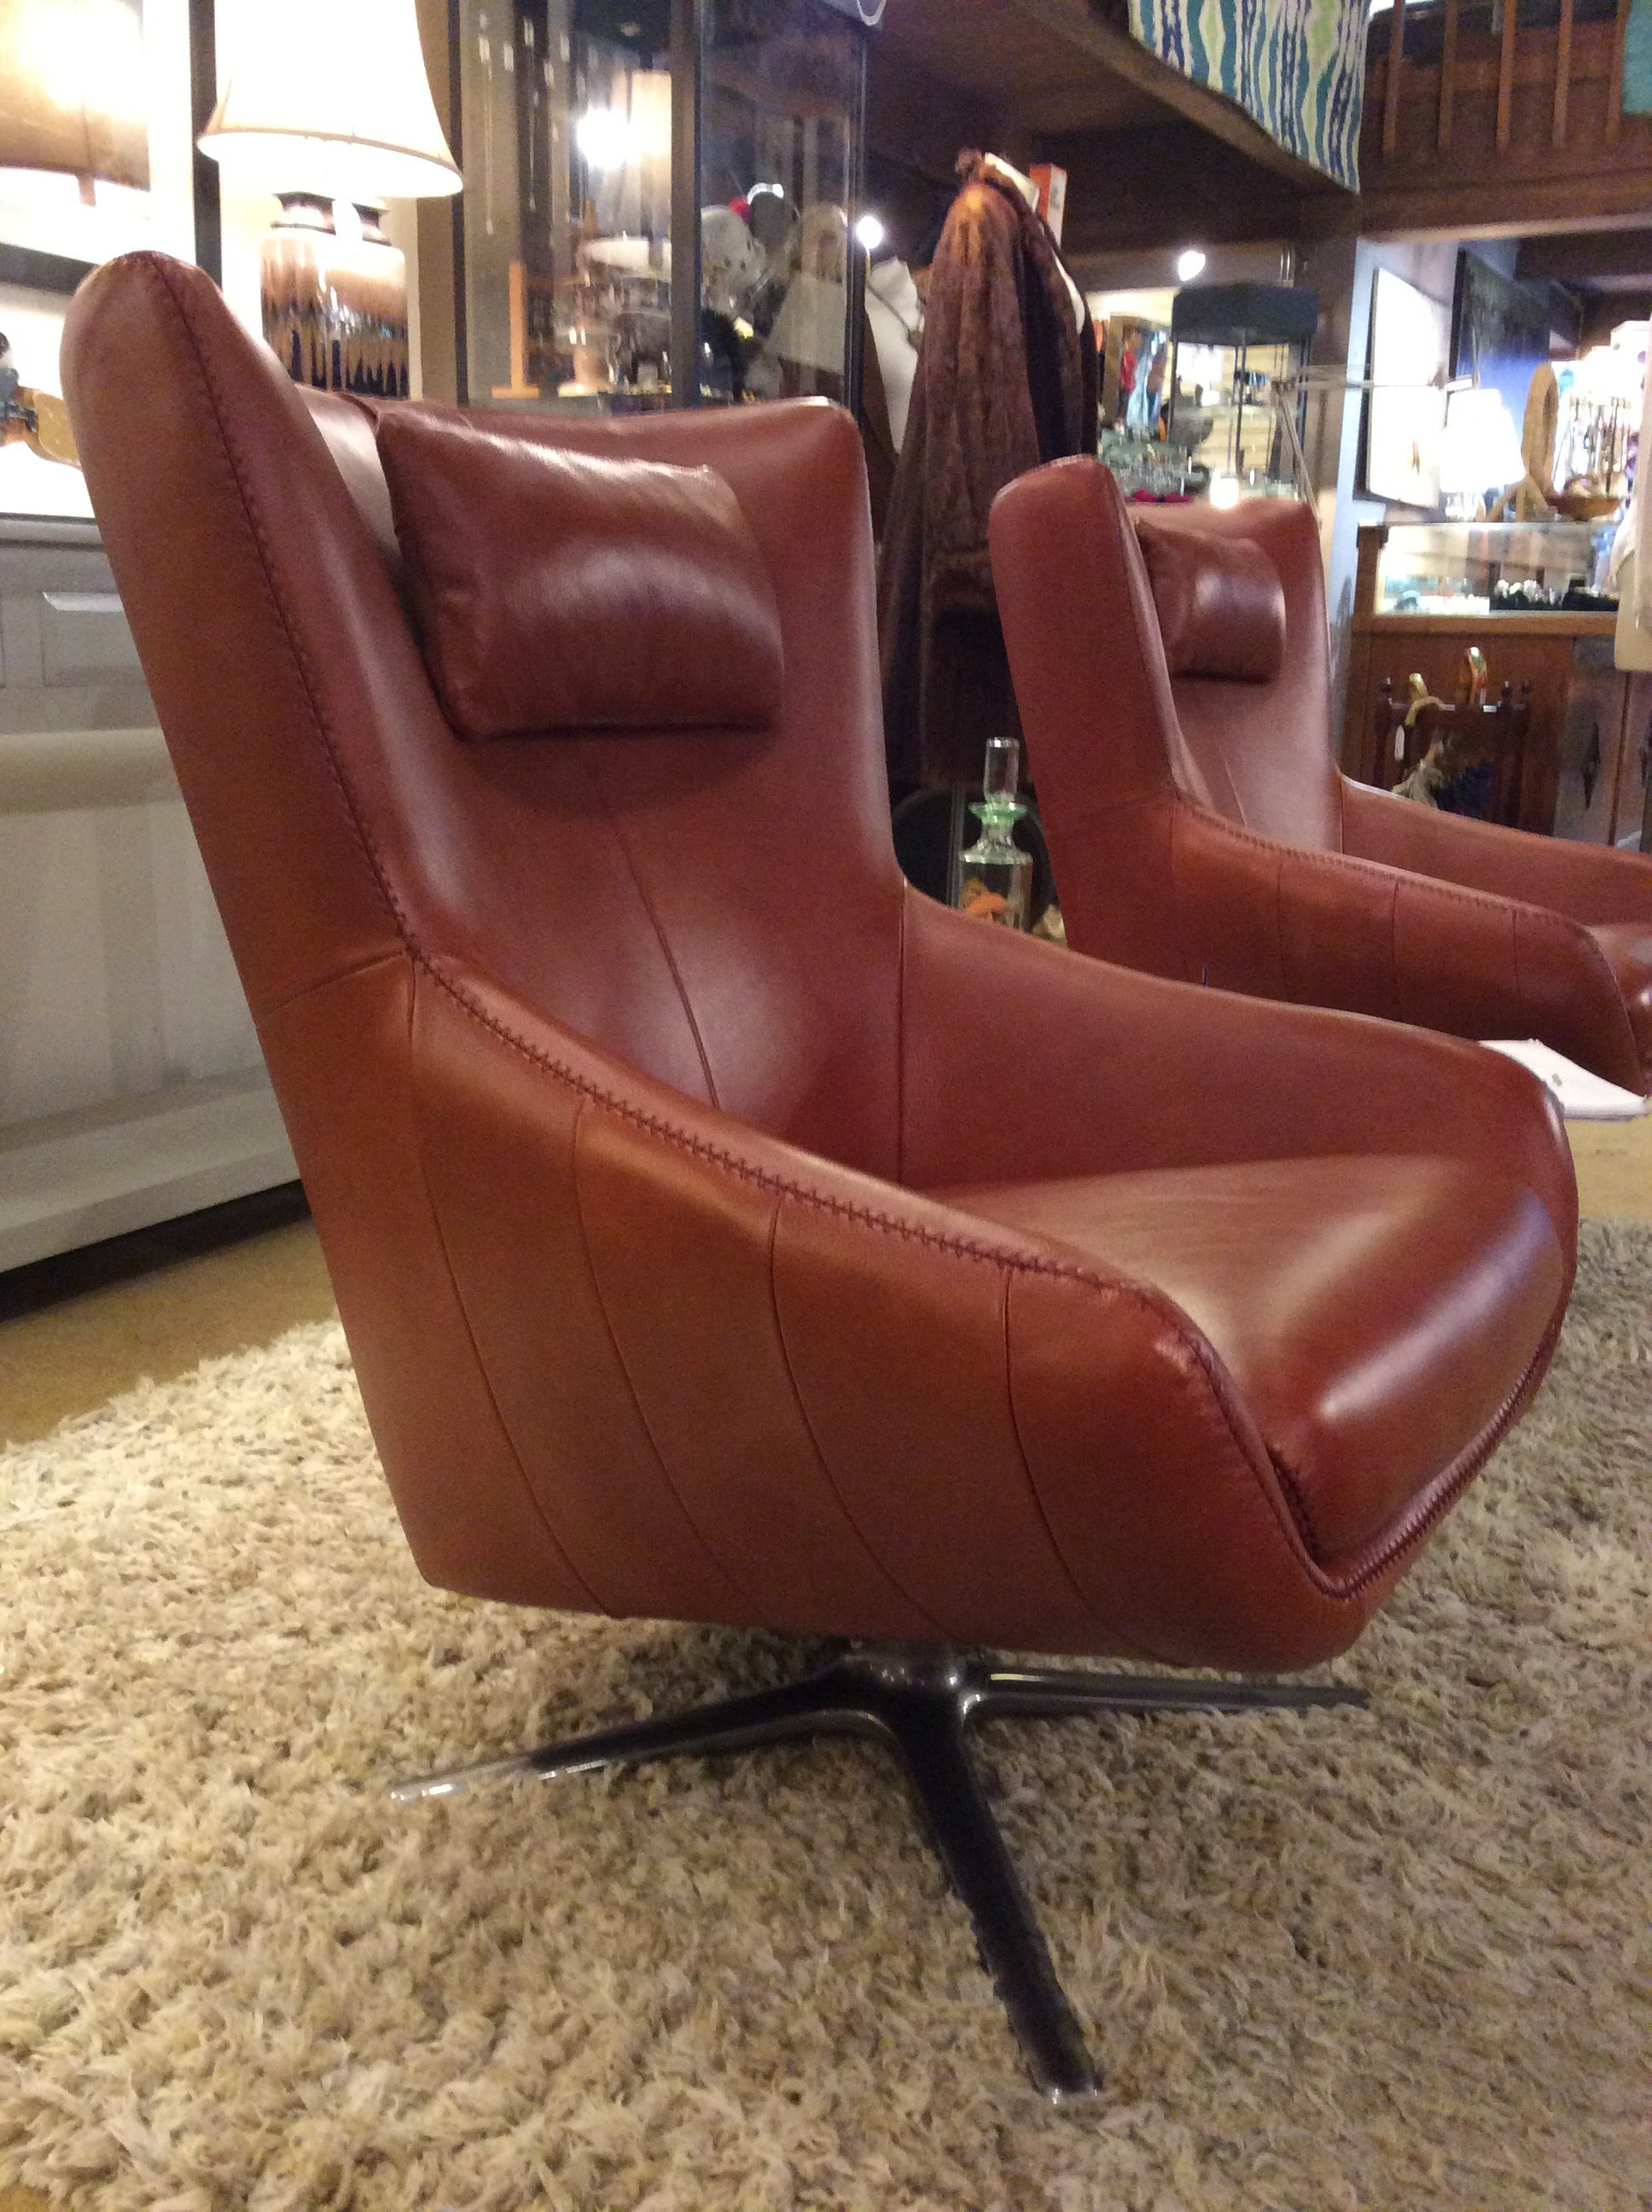 Bon Brown Leather Swivel Chair. Vintage Purple Leather Armchair SOLD